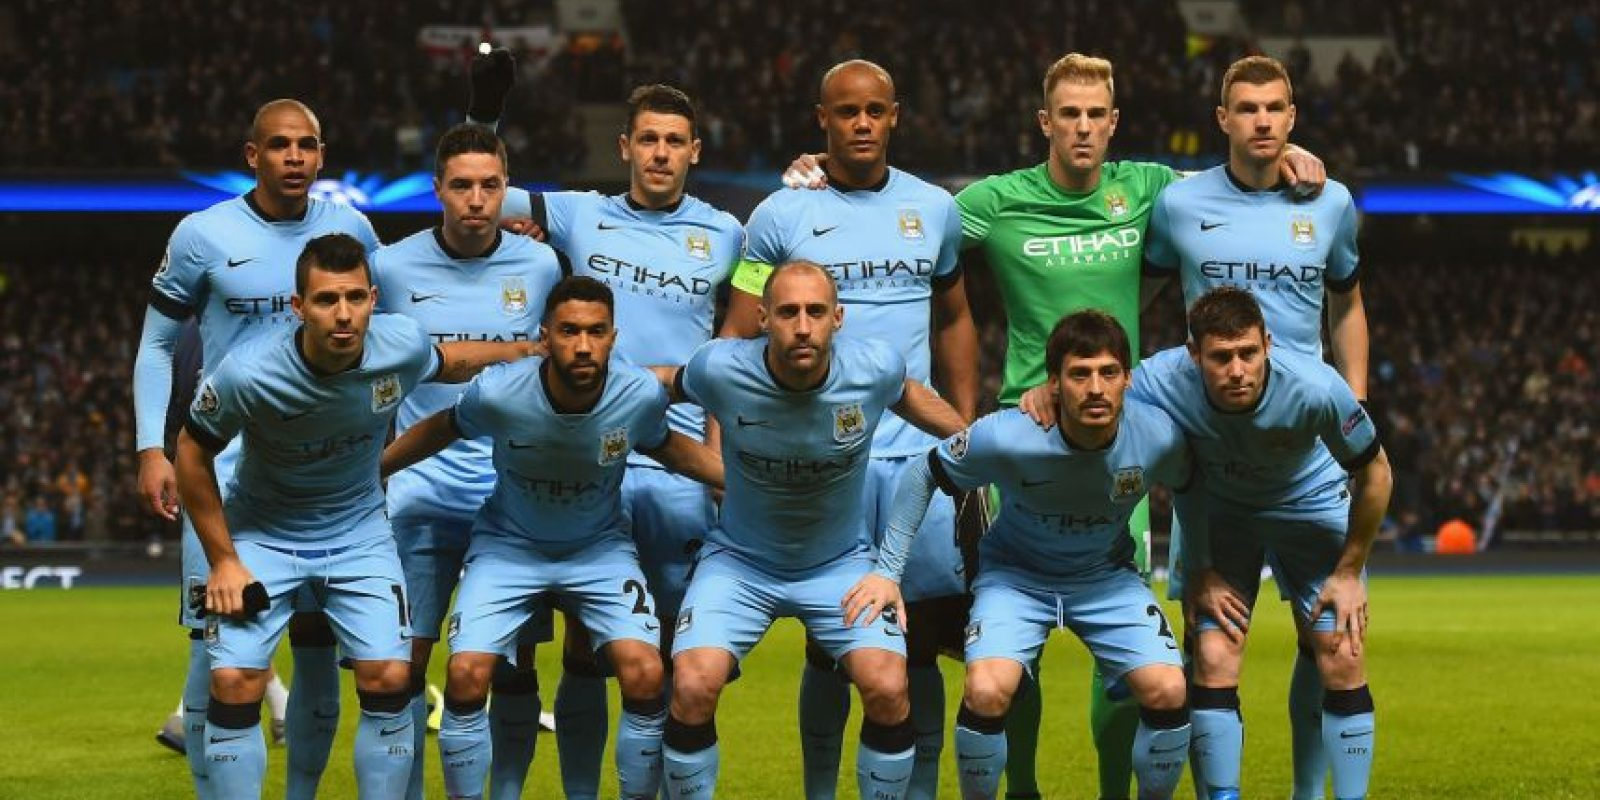 10. Manchester City (Premier League) Foto: Getty Images